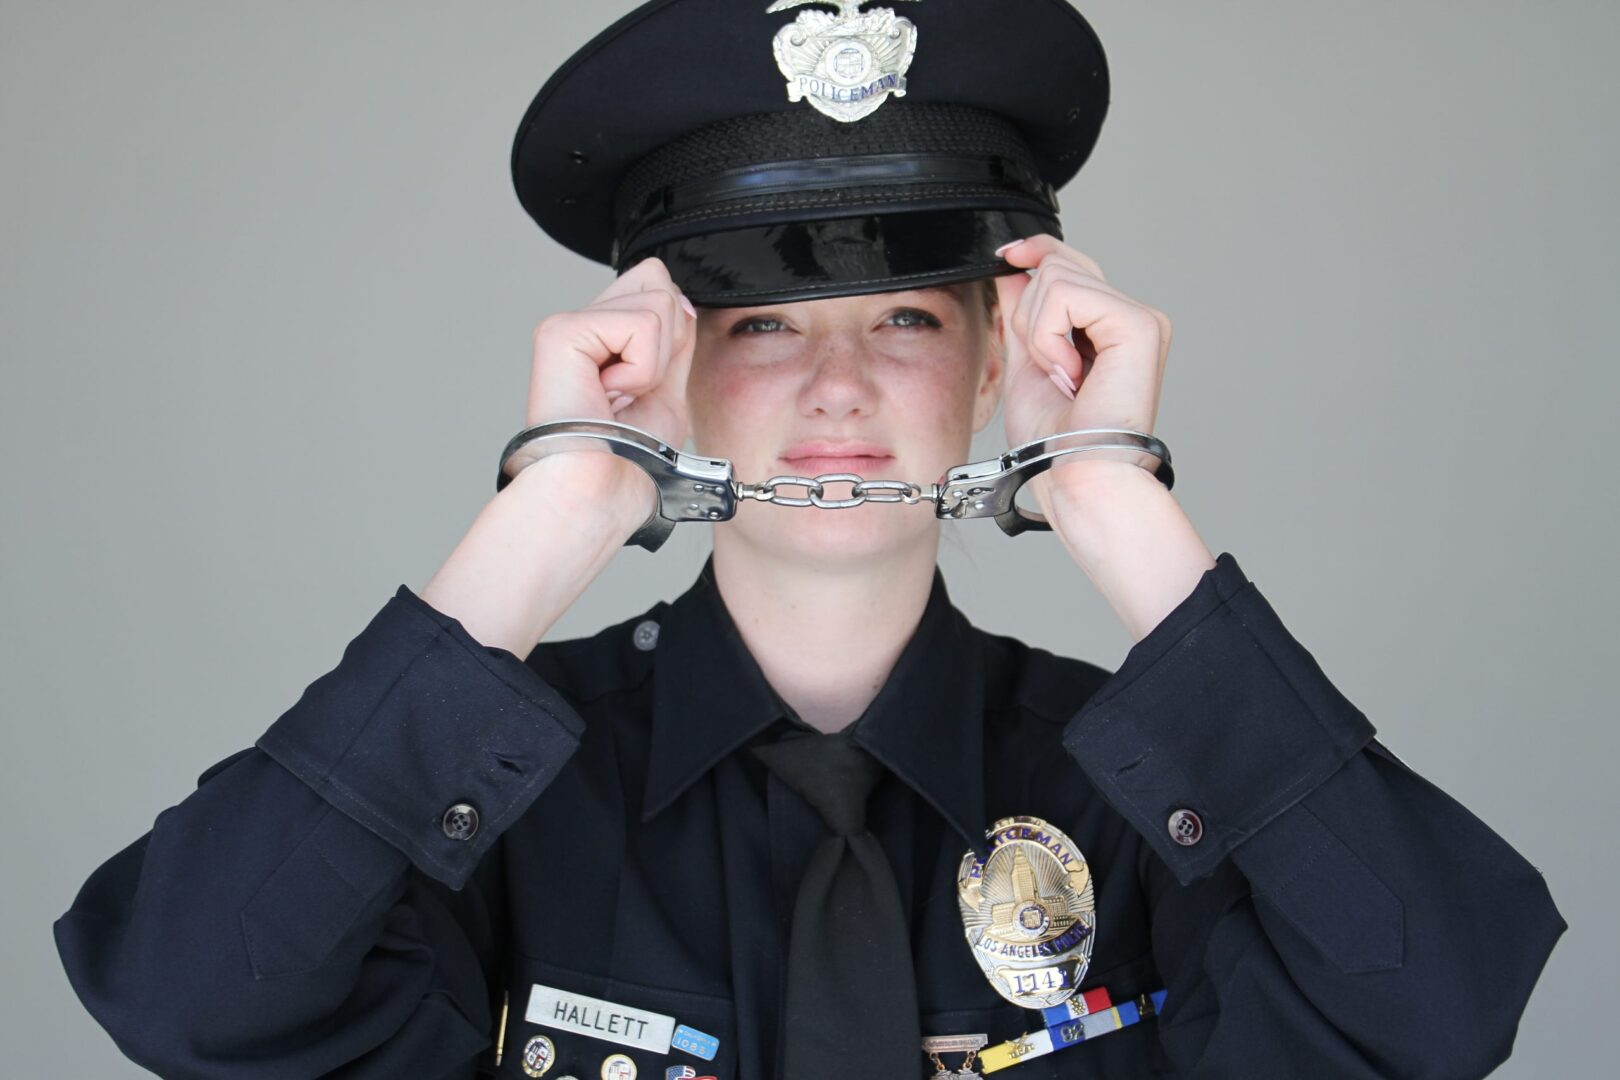 Riley Roberts Police Academy